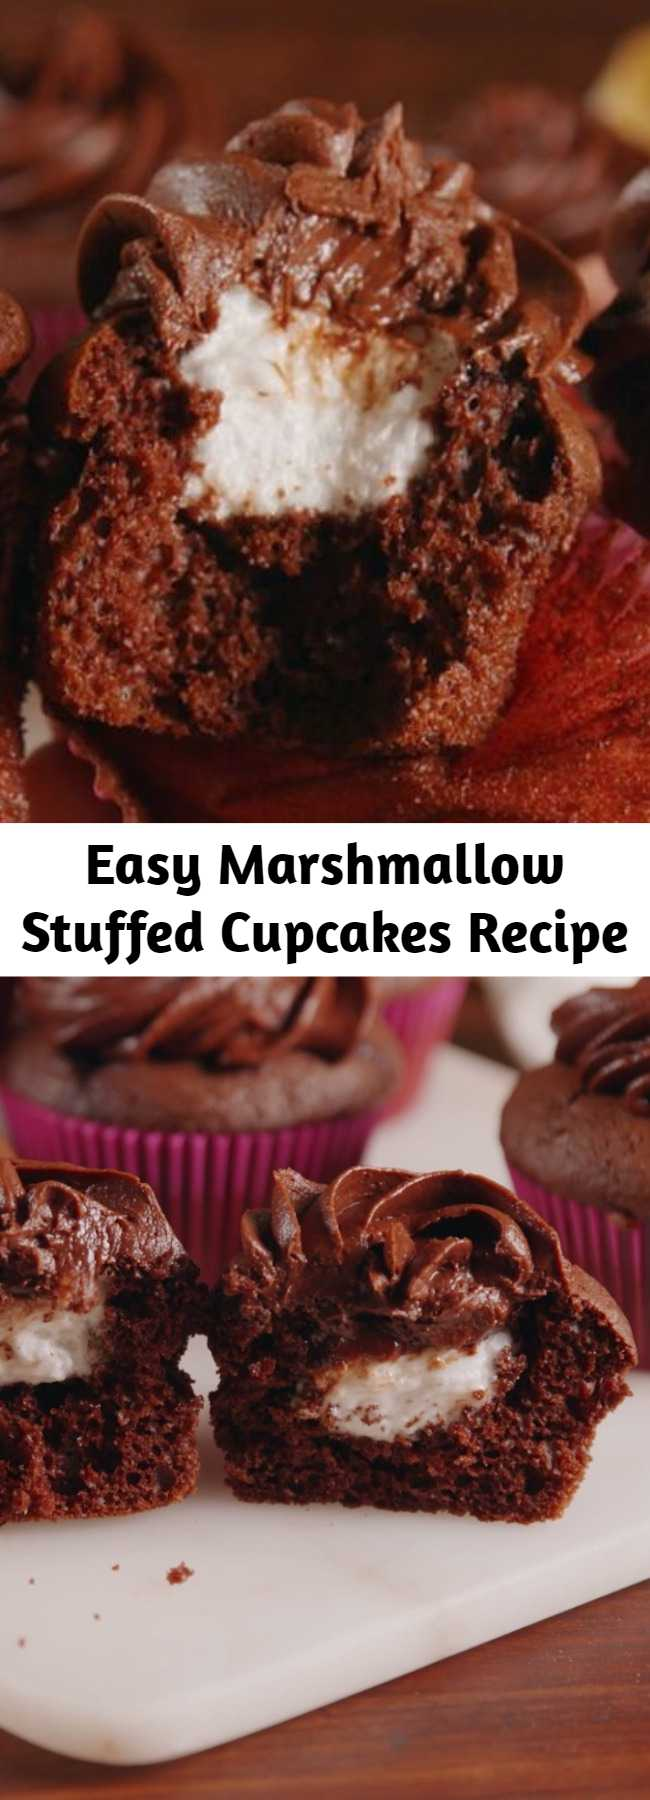 Easy Marshmallow Stuffed Cupcakes Recipe - The only thing that makes a chocolate cupcake better? A gooey marshmallow center. The gooeyness factor on these babies is through the roof.